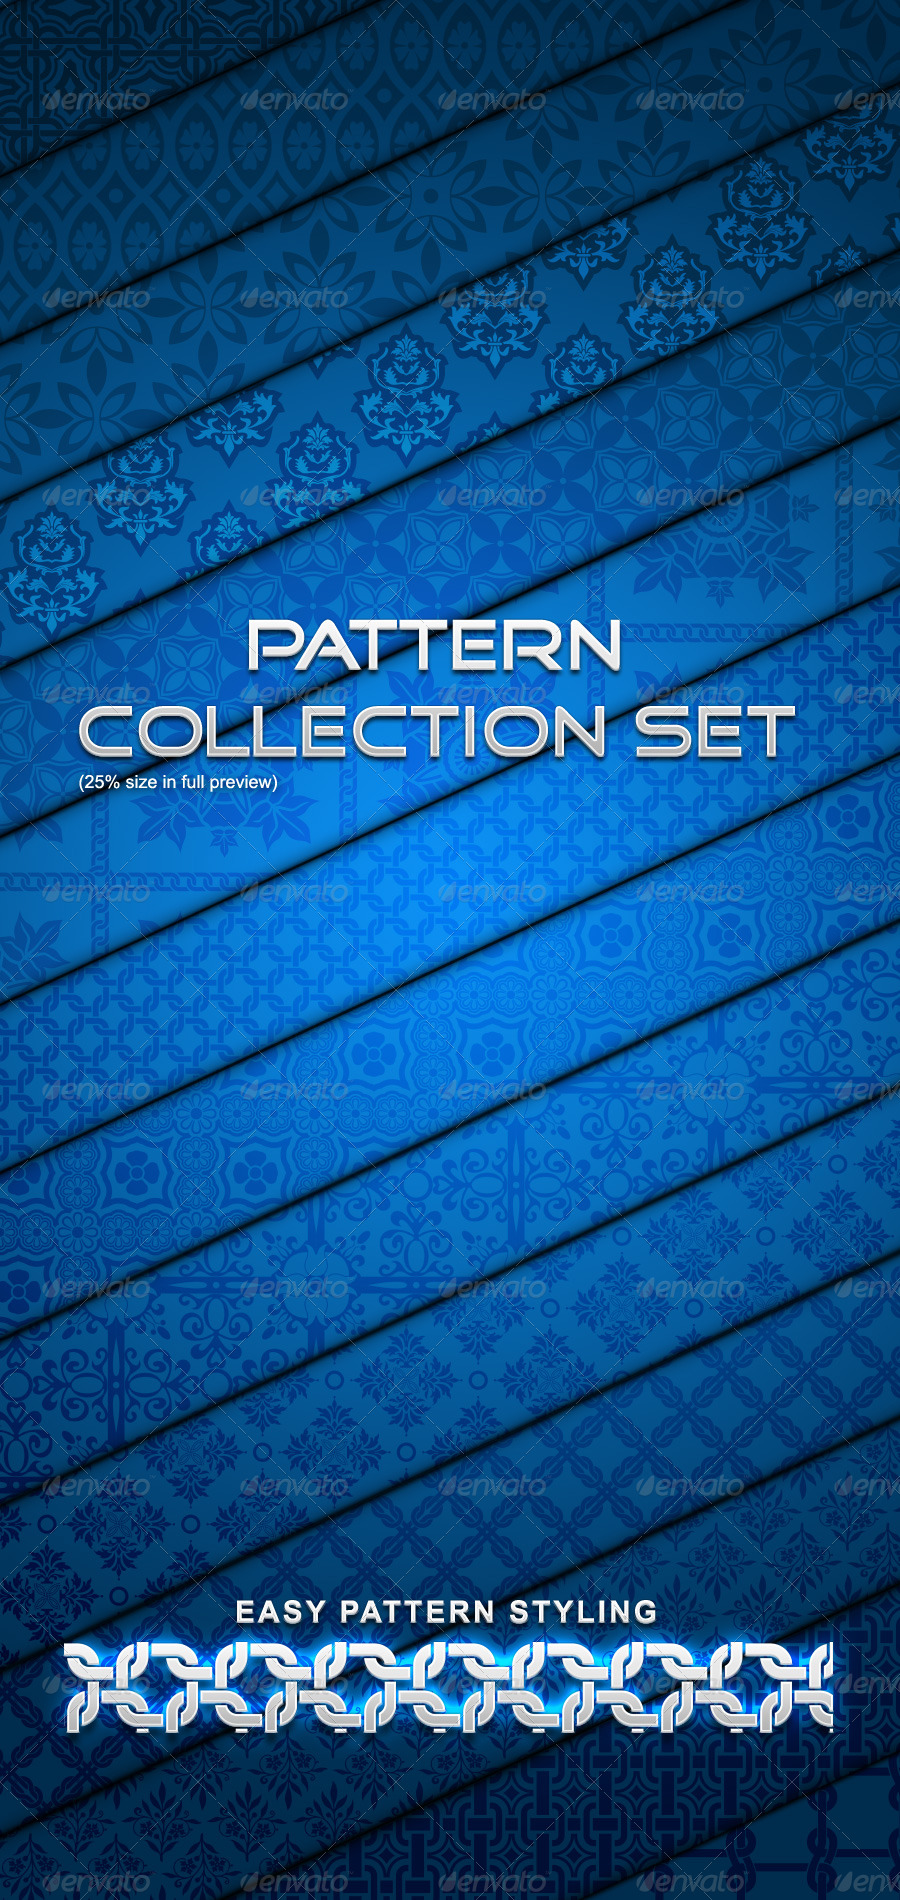 Pattern Collection Set